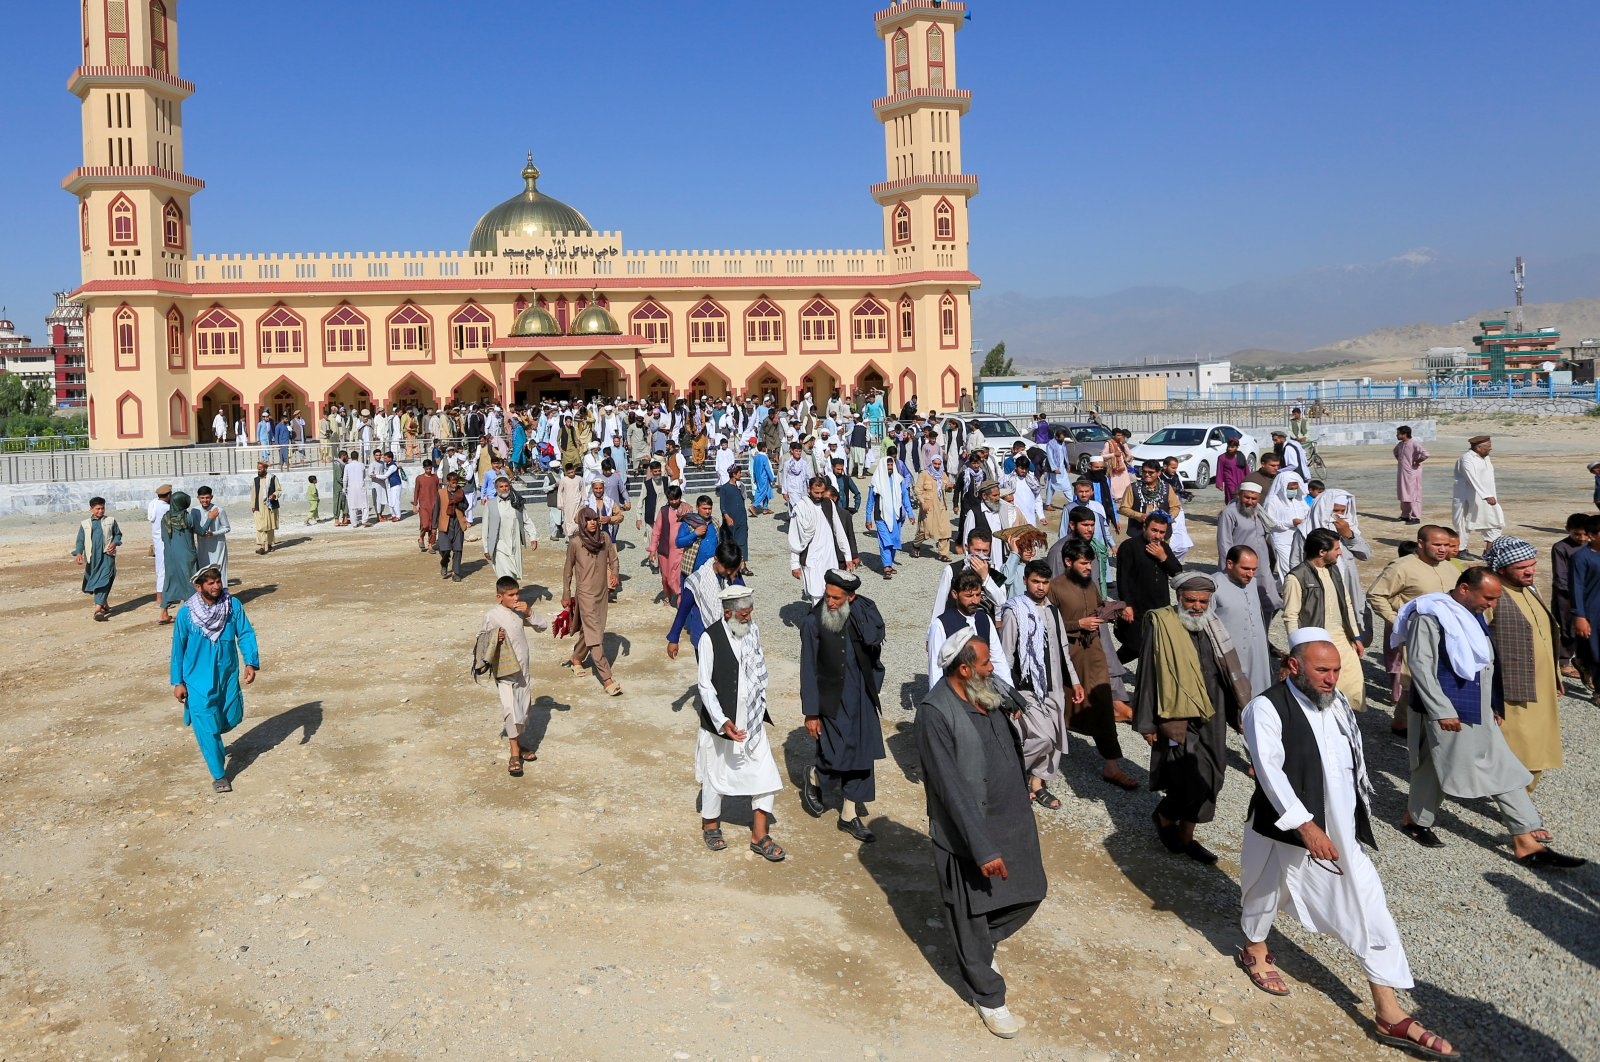 Afghan men leave a mosque after prayers during Eid al-Fitr, a Muslim festival marking the end of the holy fasting month of Ramadan, amid the spread of the coronavirus disease (COVID-19), in Laghman province, Afghanistani May 24, 2020. (REUTERS Photo)